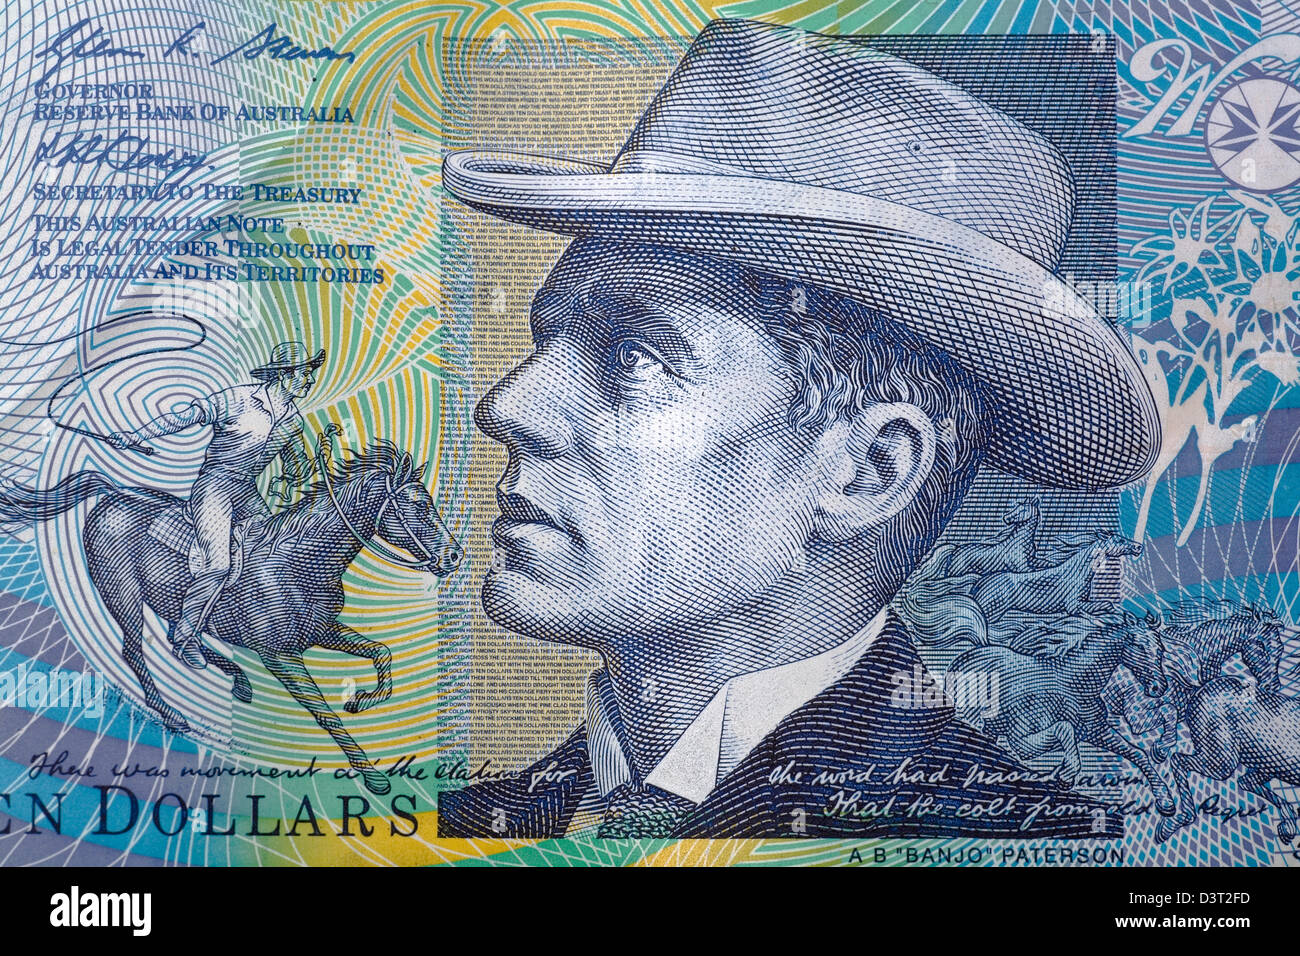 Banjo Patterson, famous Australian bush poet & author, as featured on an Australian $10 banknote - Stock Image